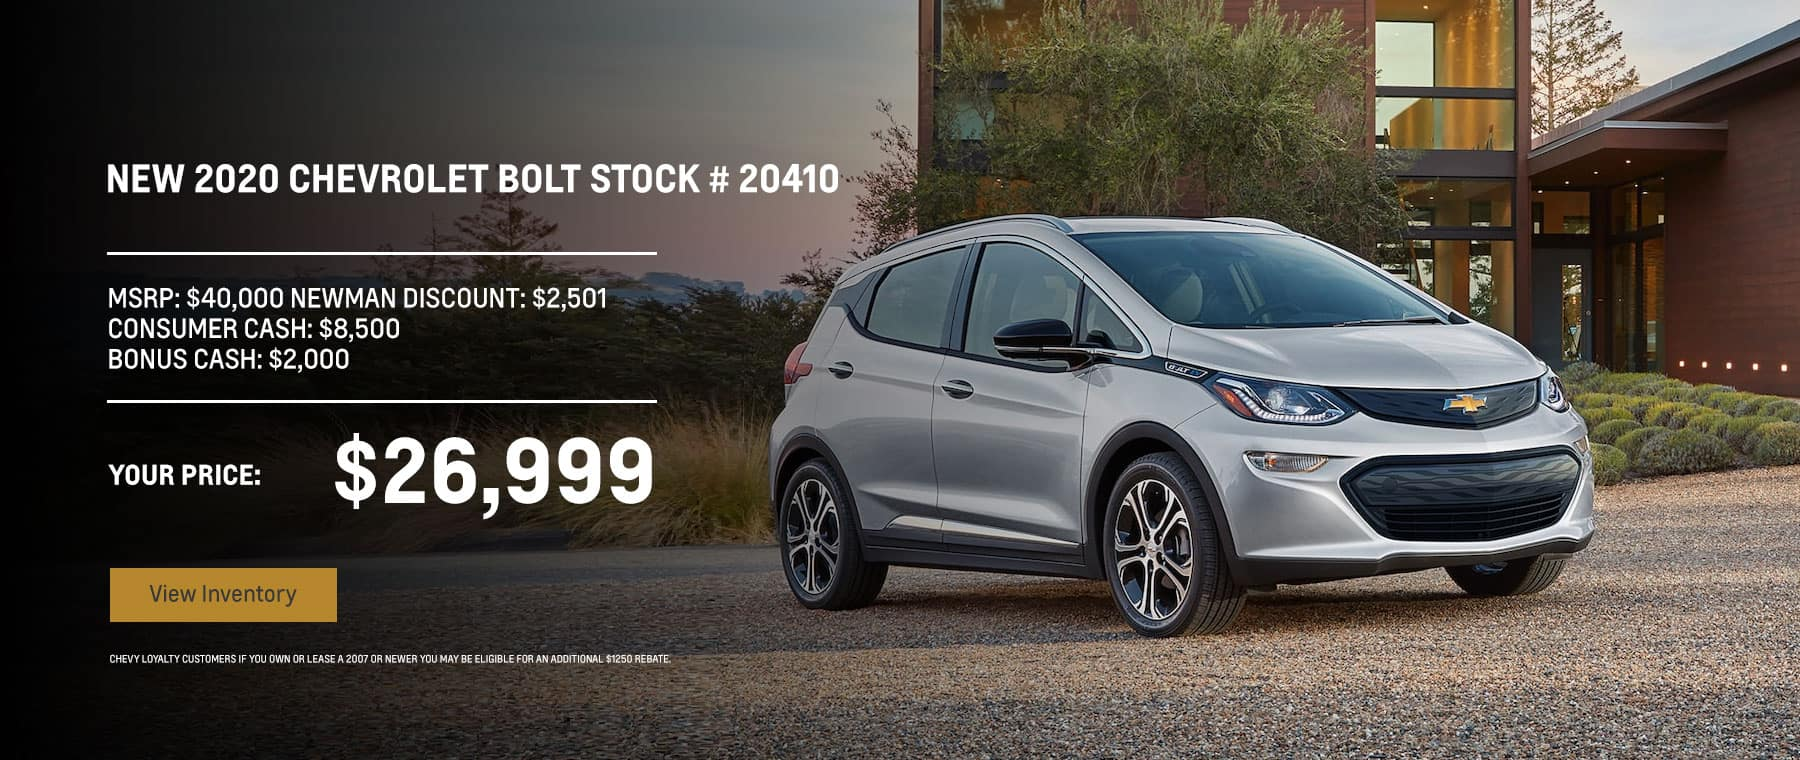 2020 Chevy Bolt STK# 20410, MSRP: 40,000 Newman Discount: -2,501 Consumer cash: -8,500 Bonus Cash: -2,000 YOUR PRICE: